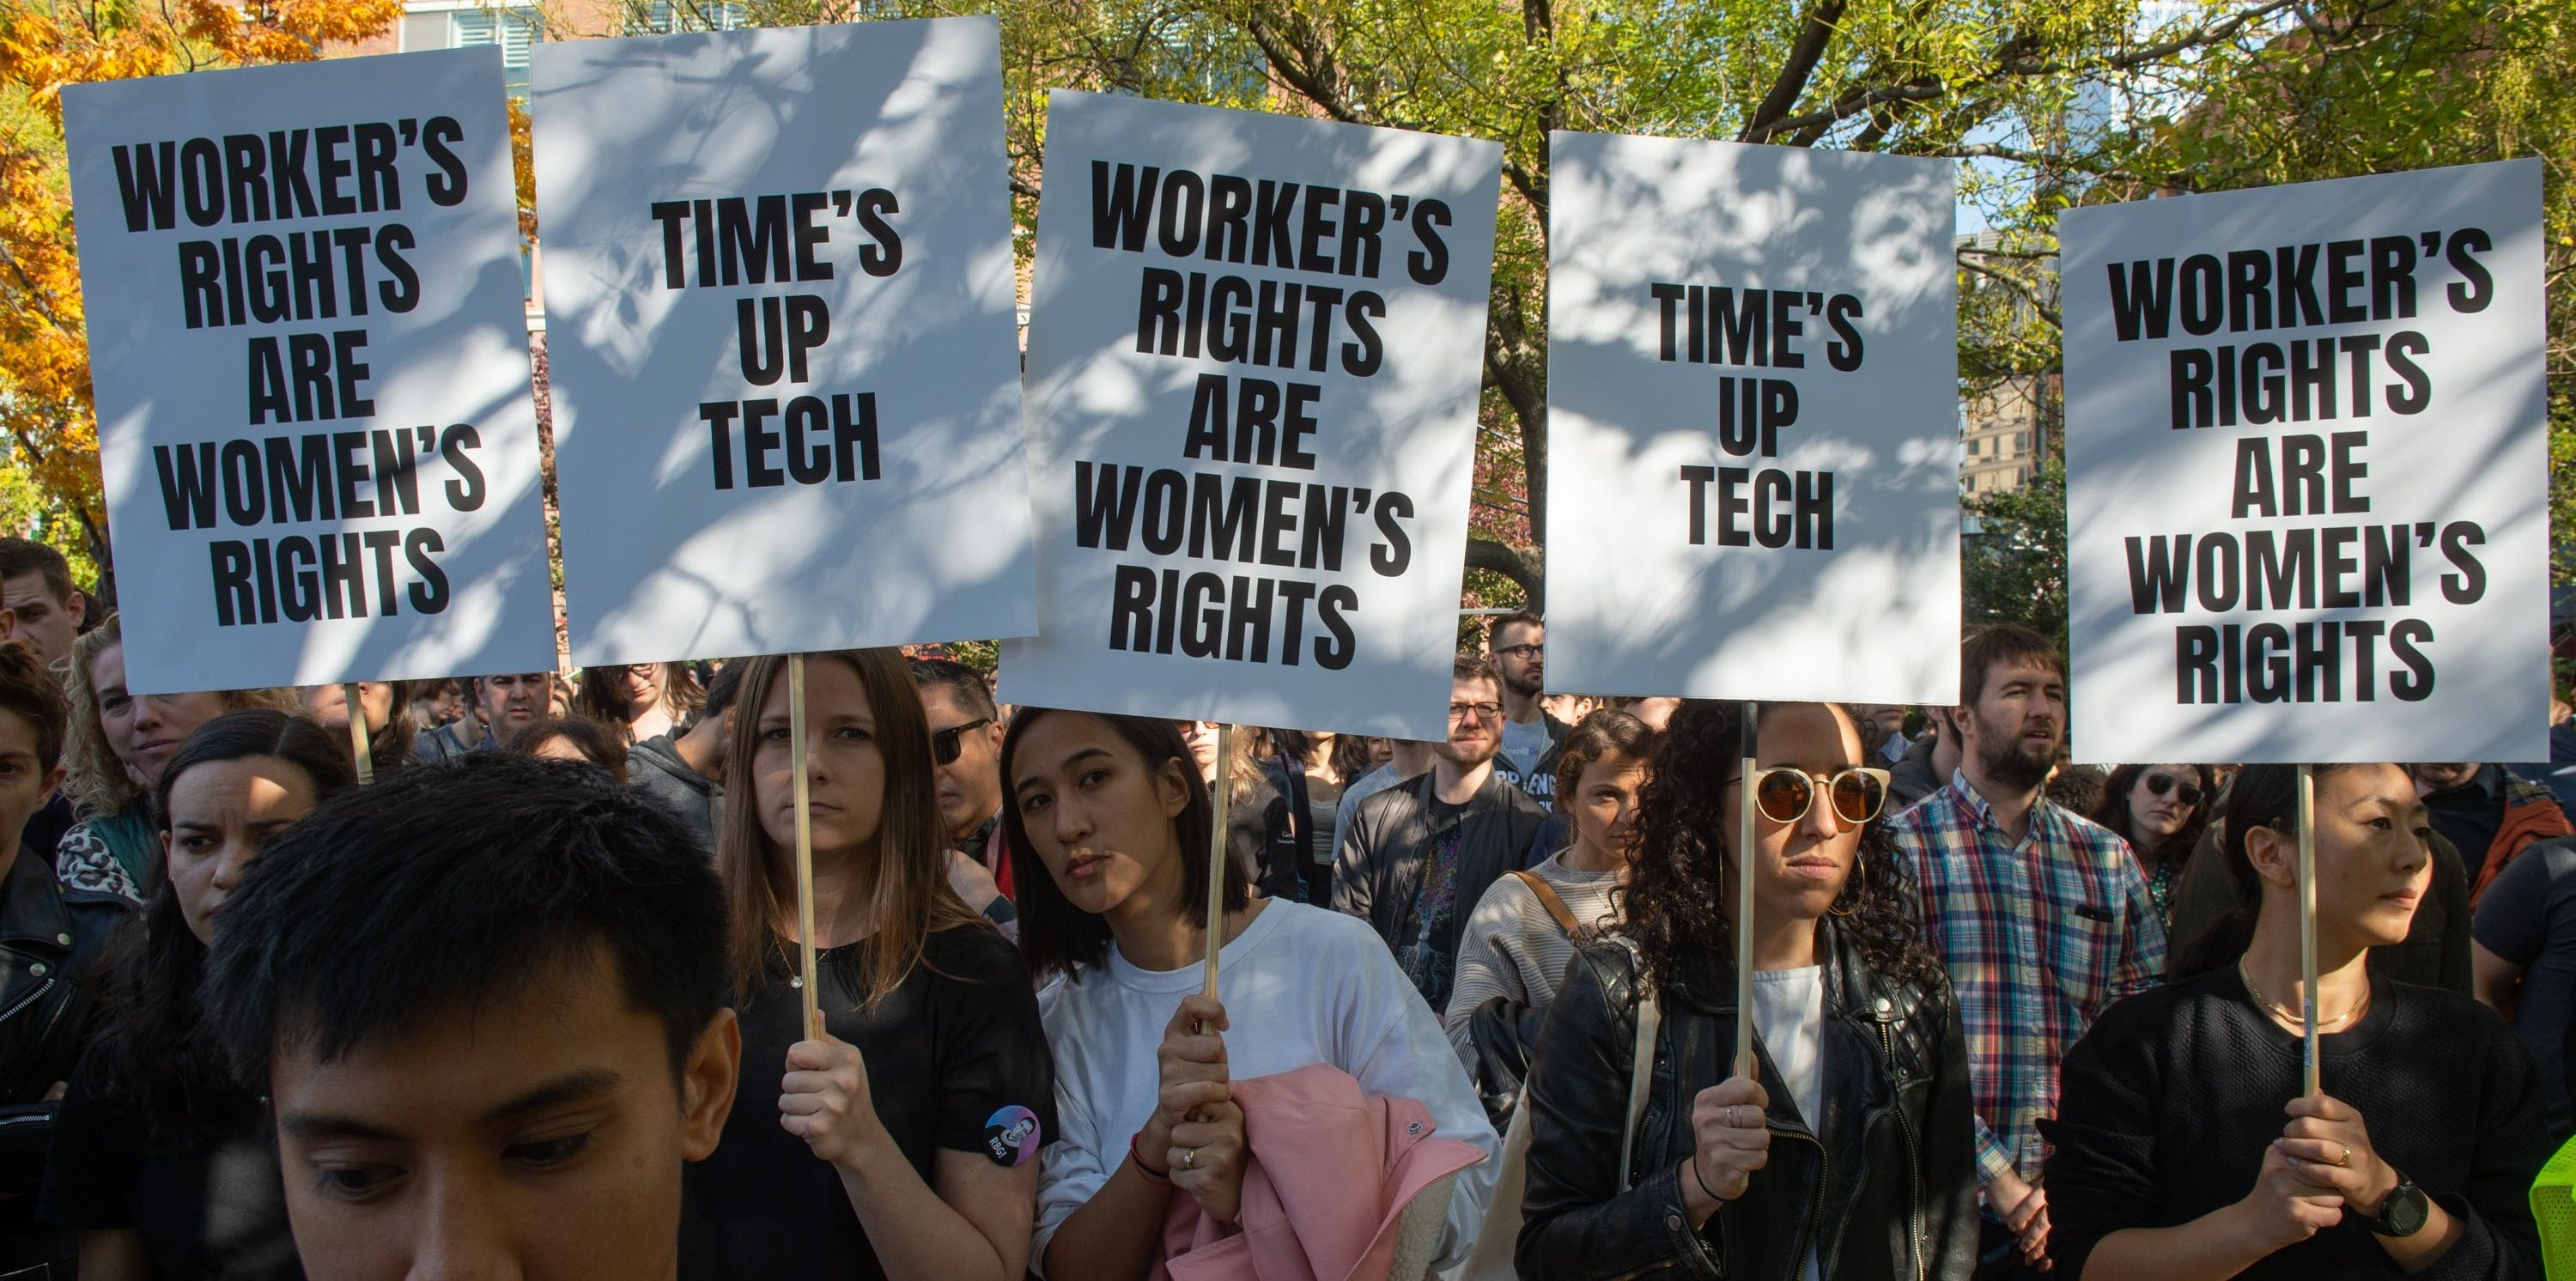 Google and Facebook Ended Mandatory Arbitration for Sexual Harassment Claims. Will Workers Outside the Tech Industry Benefit?